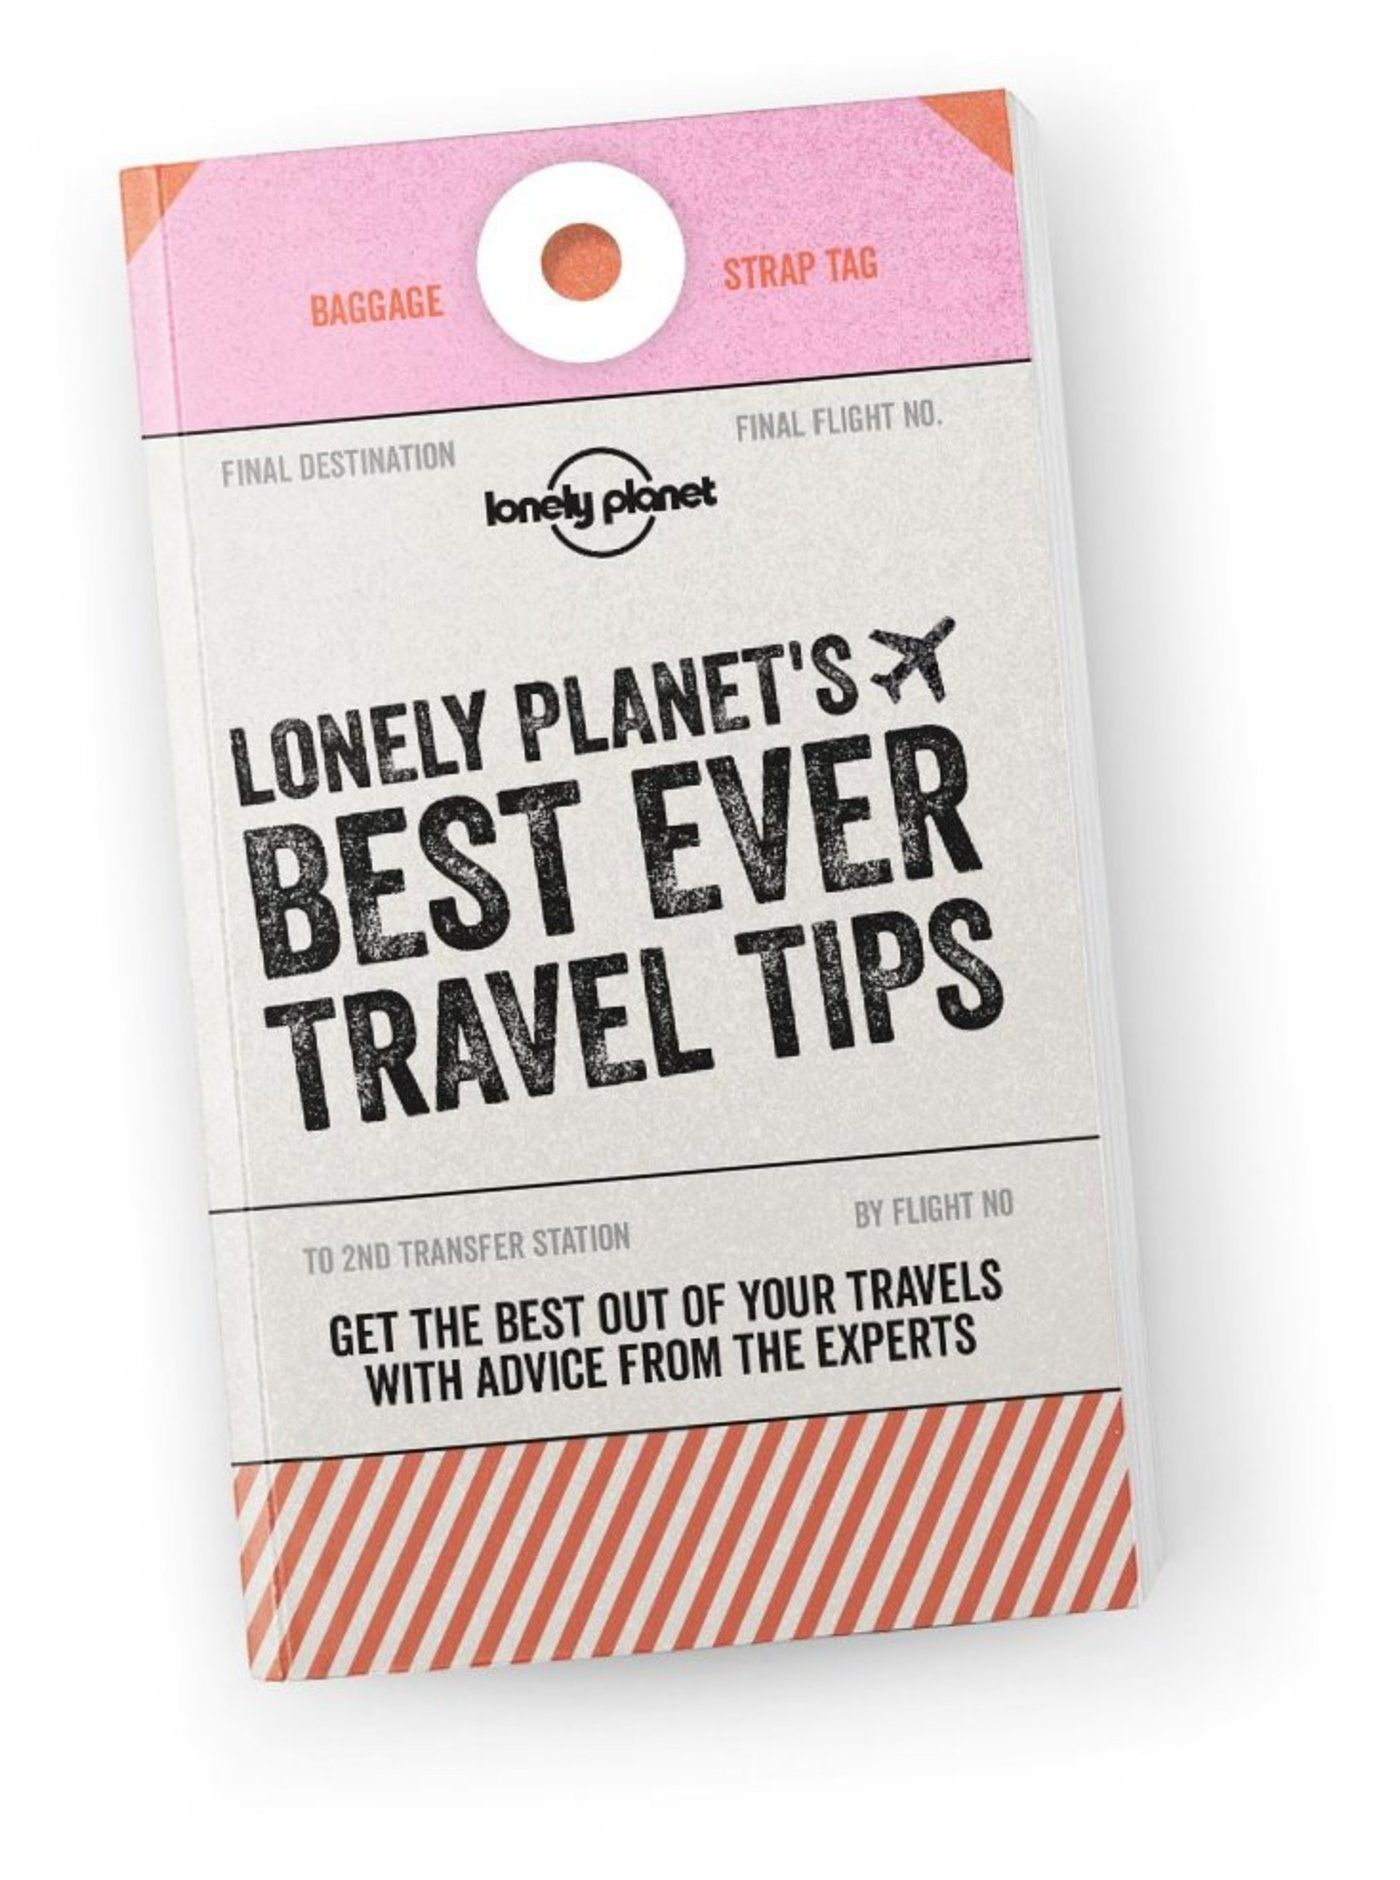 Unpacked - Lonely Planet's travel blog